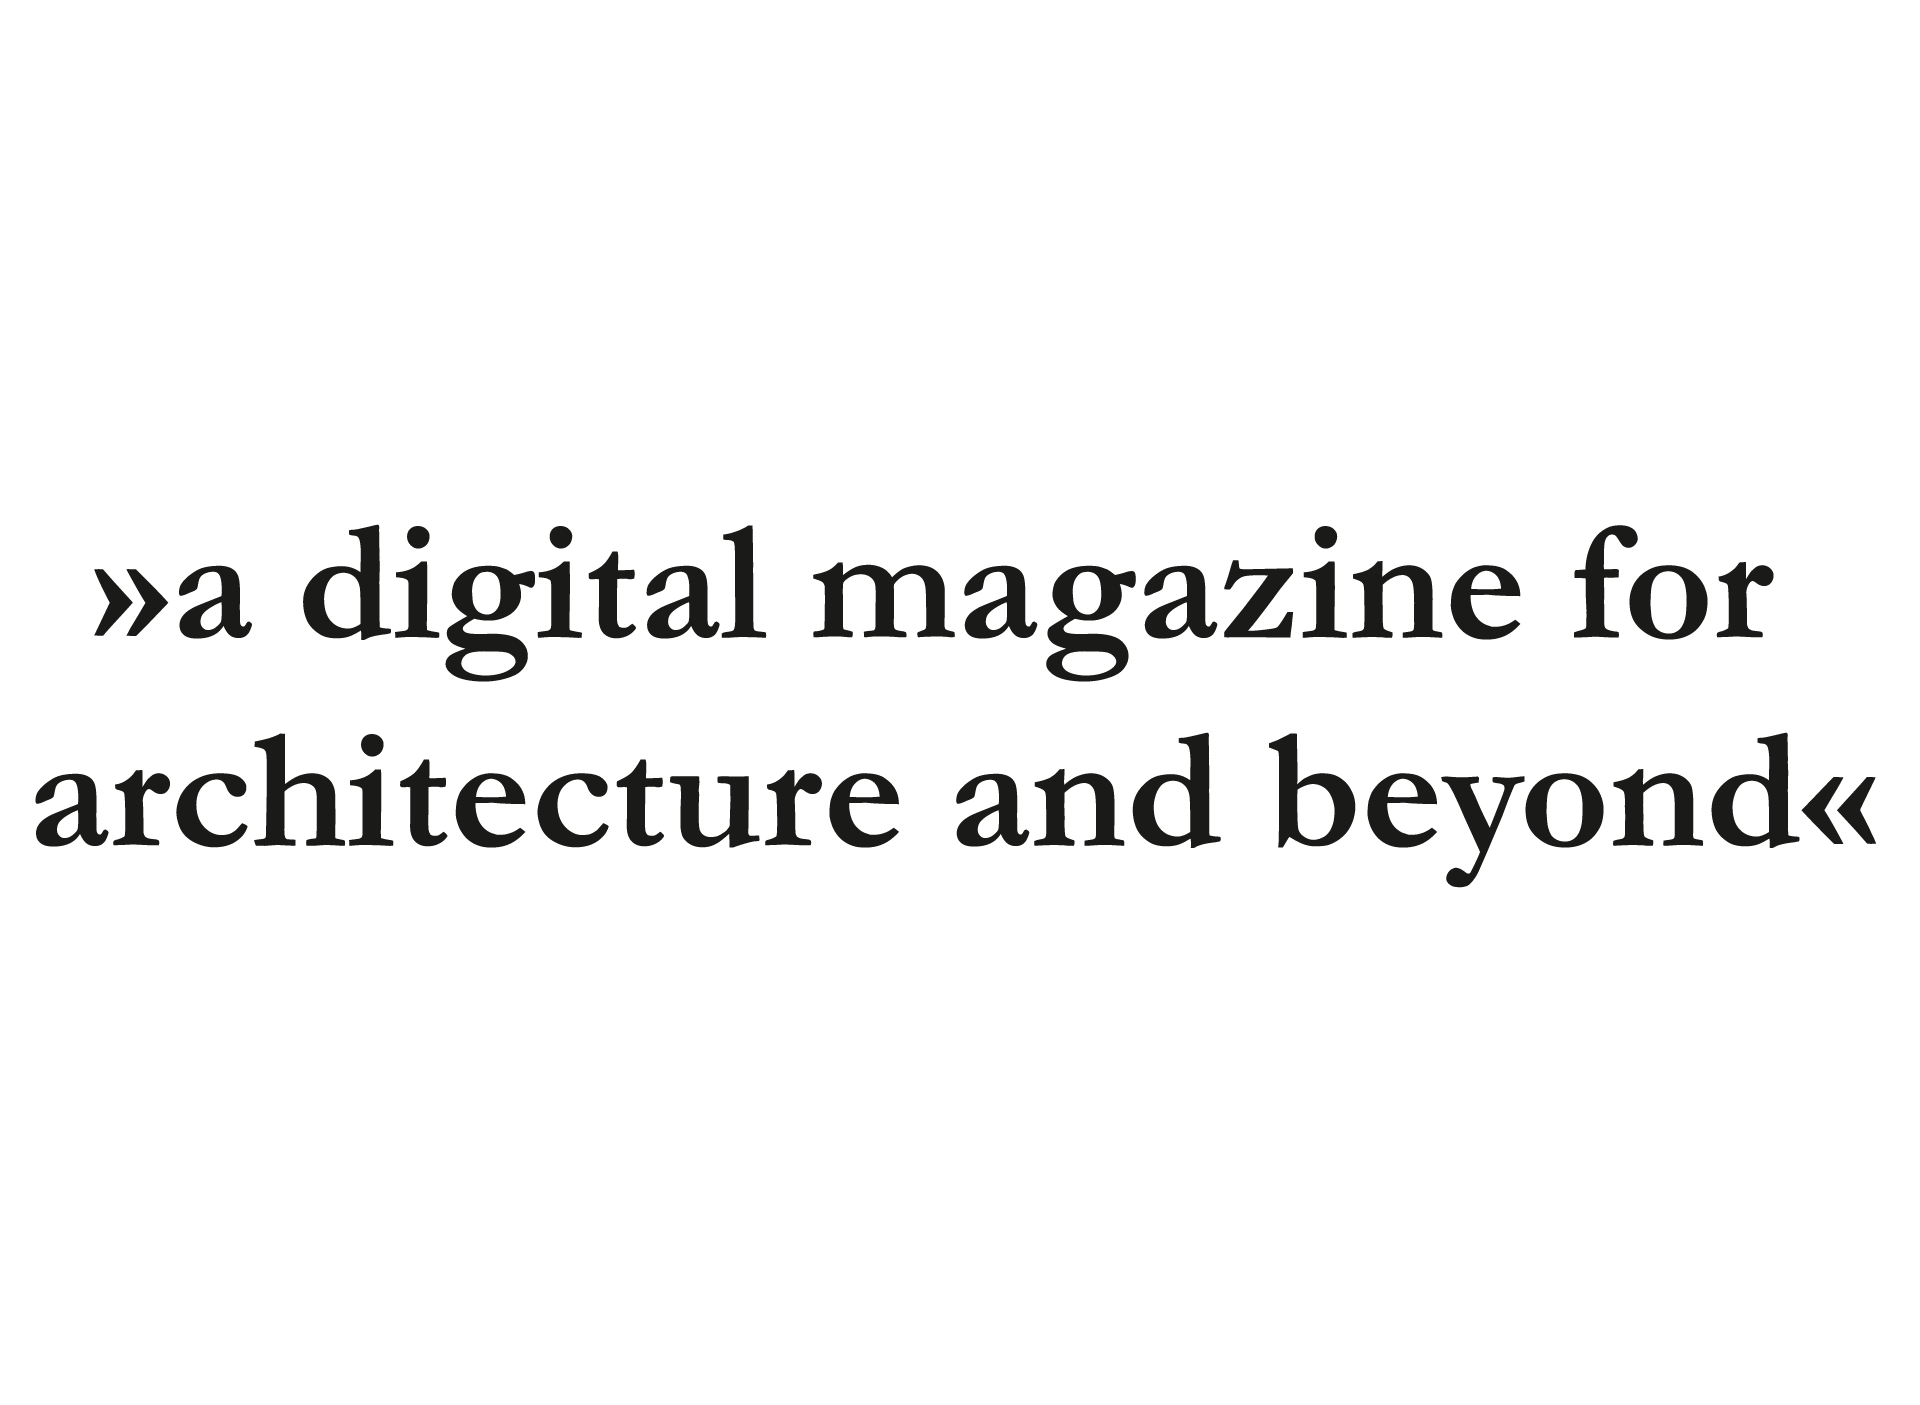 Uncube »a digital magazine for architecture and beyond«